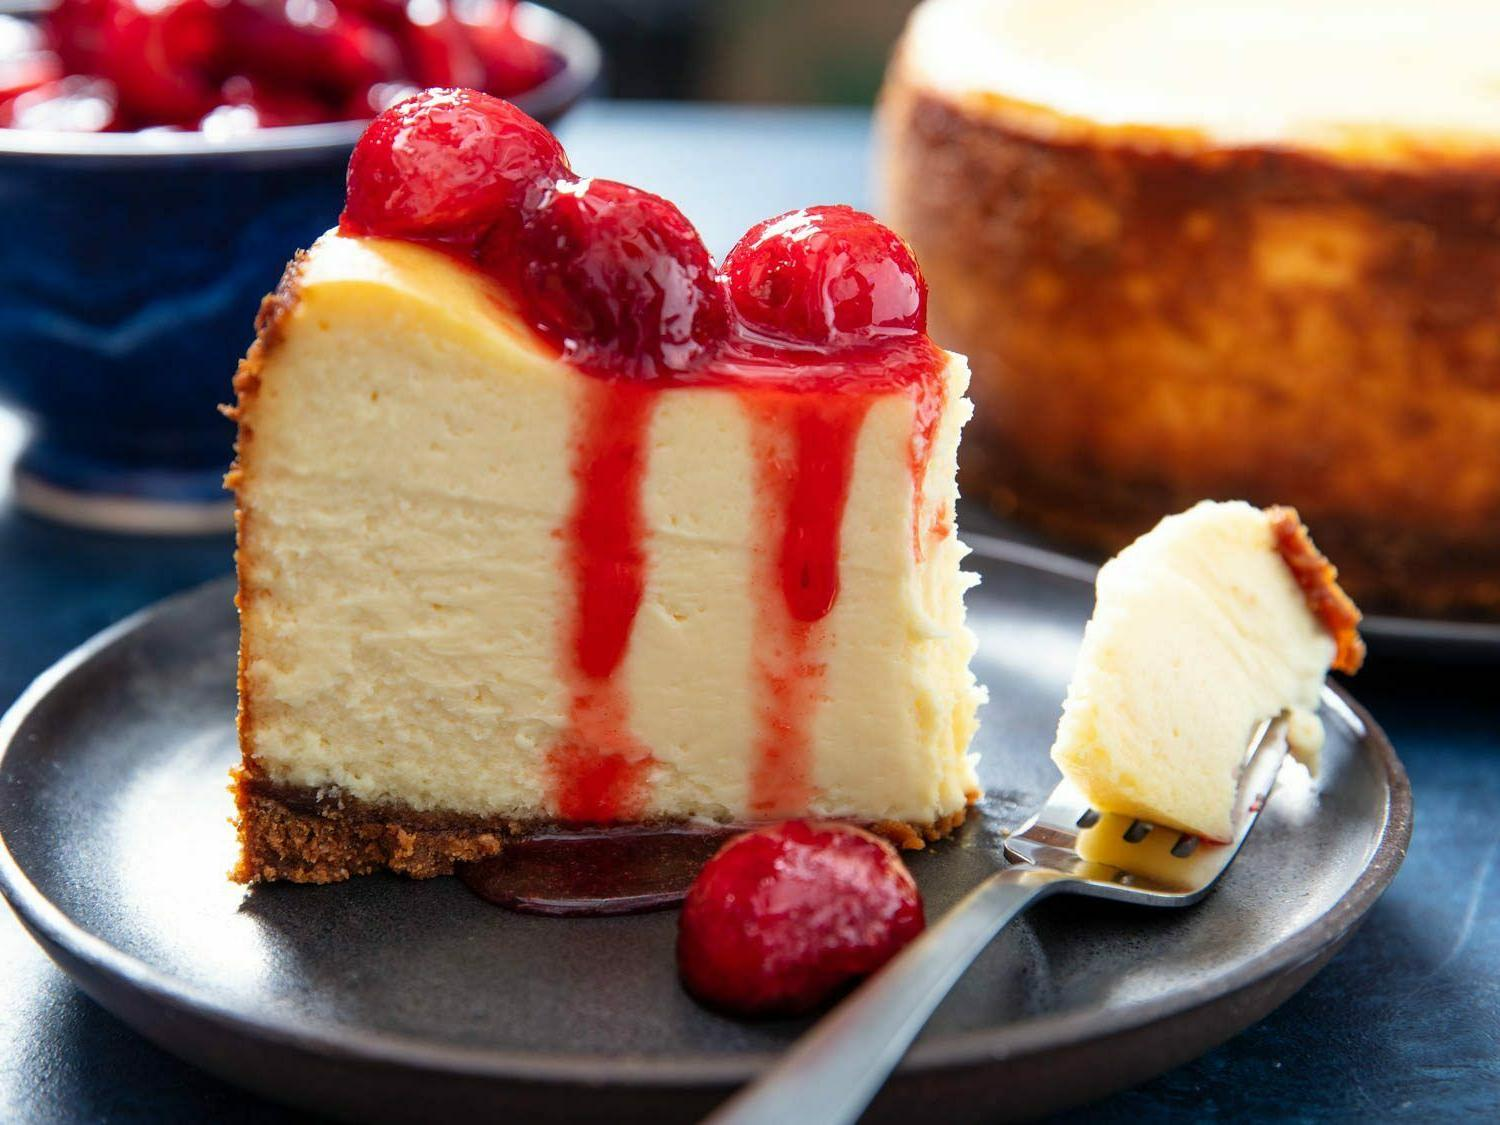 Freeze fully sliced cheesecake Camping Survival Storage Food